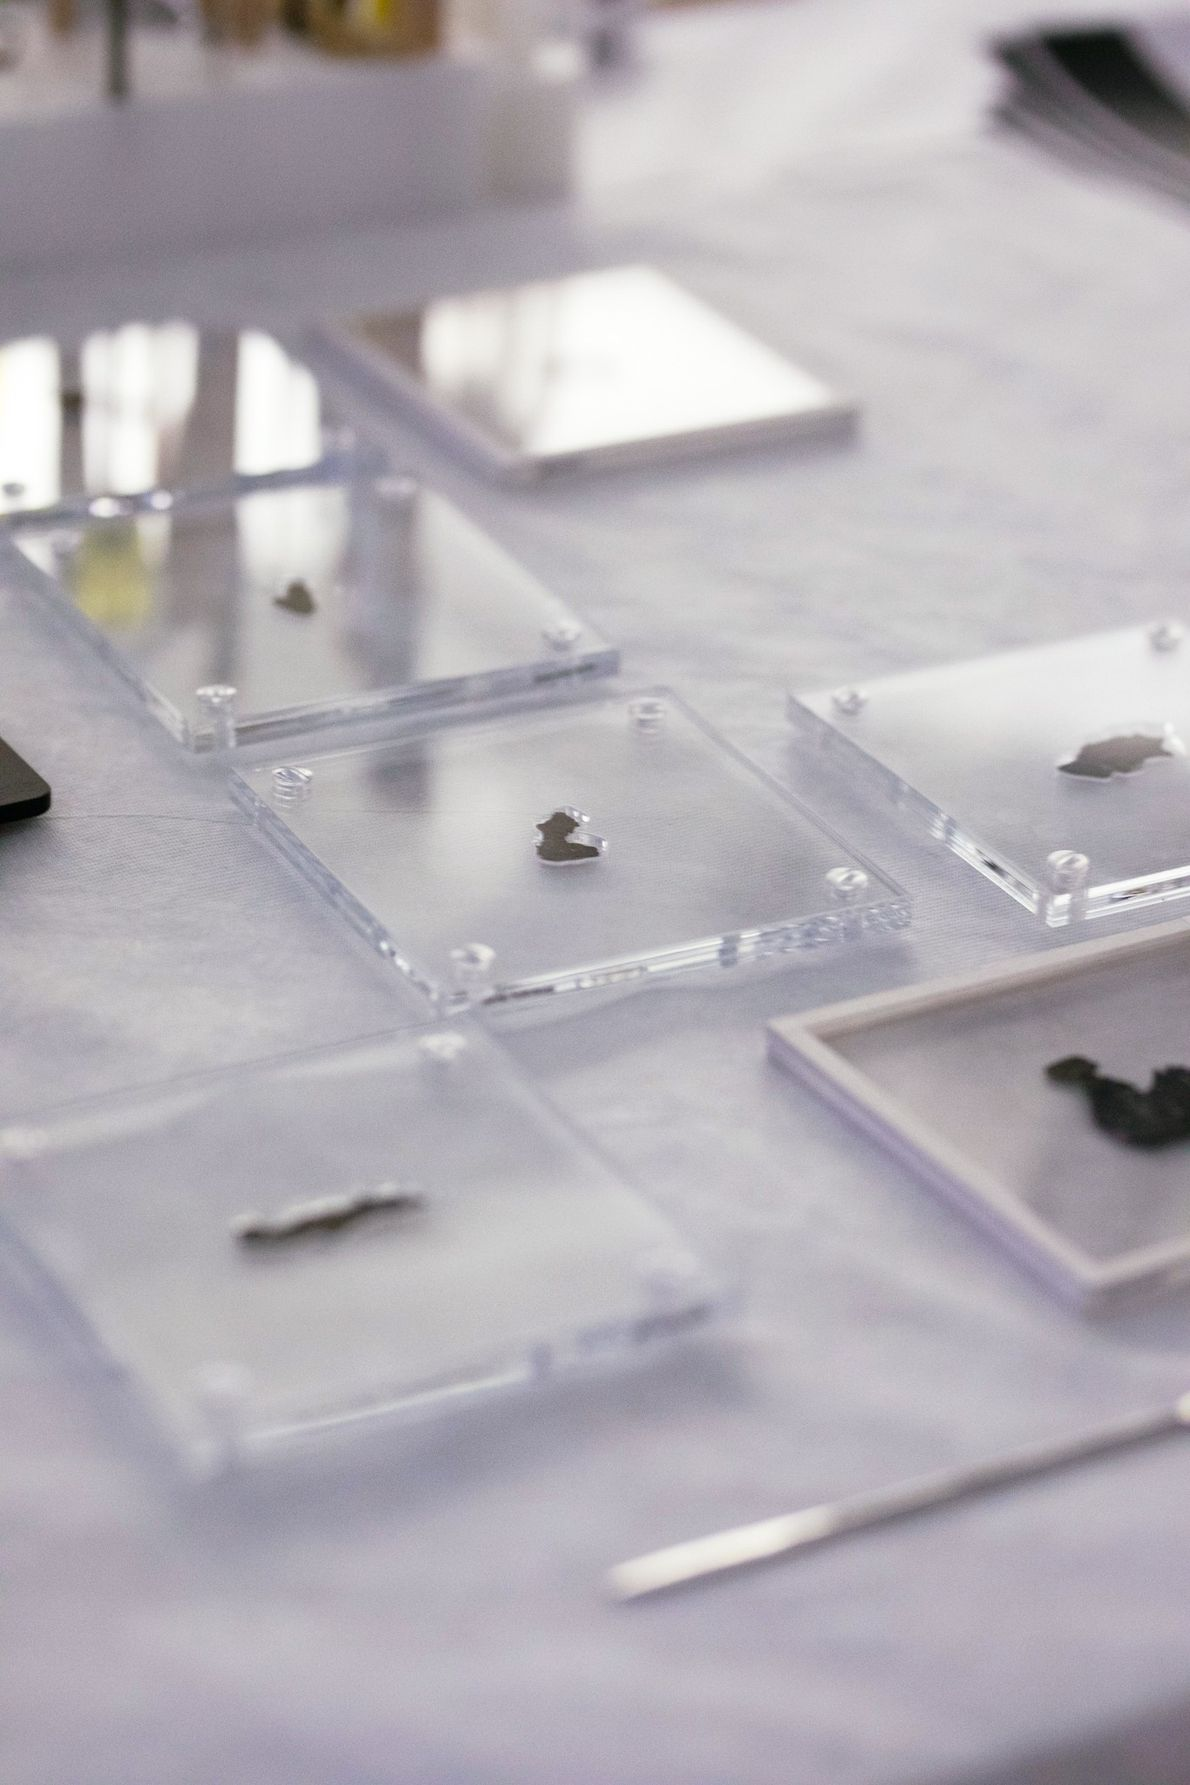 Housed in custom-cut acrylic mounts, the Museum of the Bible's Dead Sea Scroll fragments await inspection.